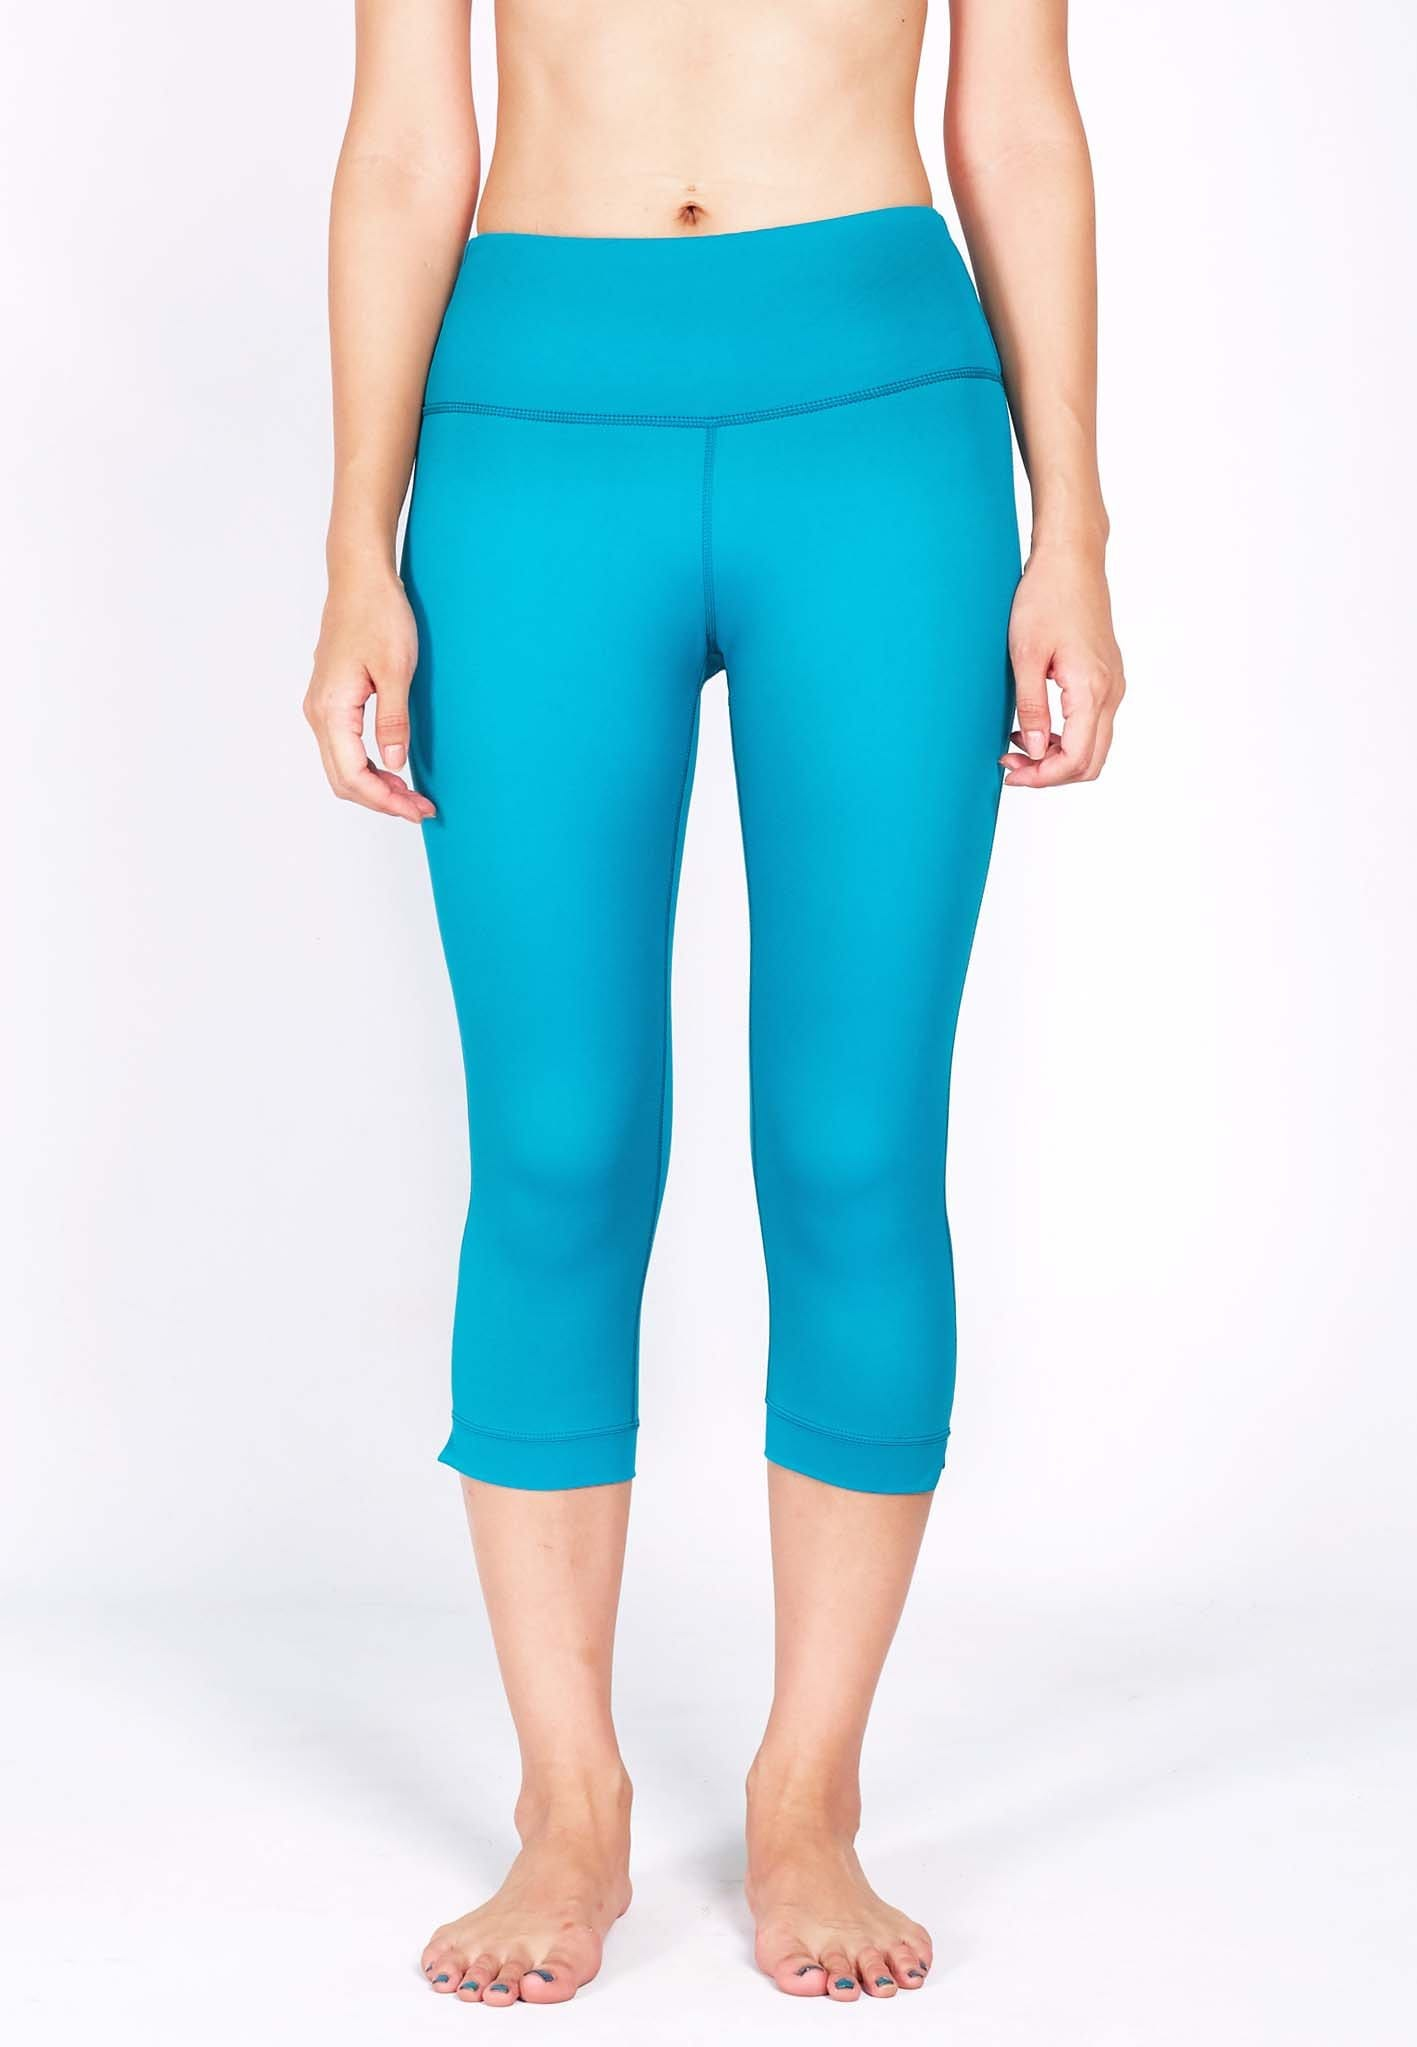 FUNFIT DEFINE 3/4 Capris (with Keeperband®) (Aqua) | S - 3XL